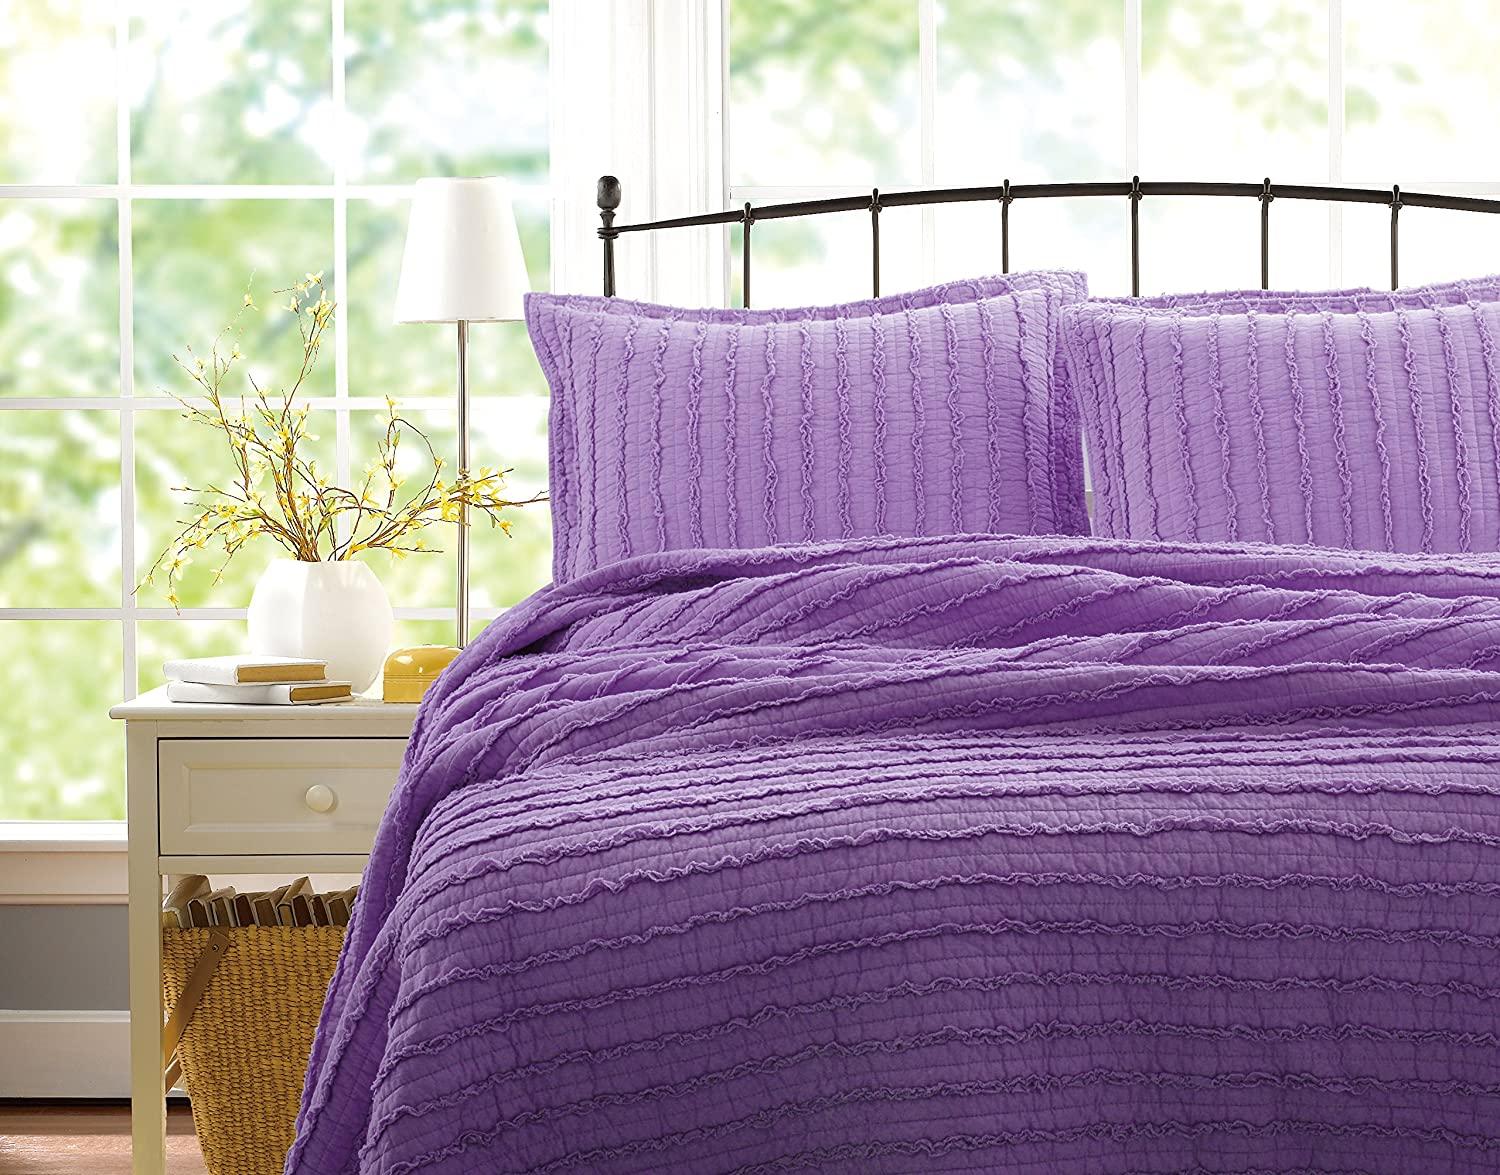 Greenland Home 3-Piece Ruffled Quilt Set, King, Lavender